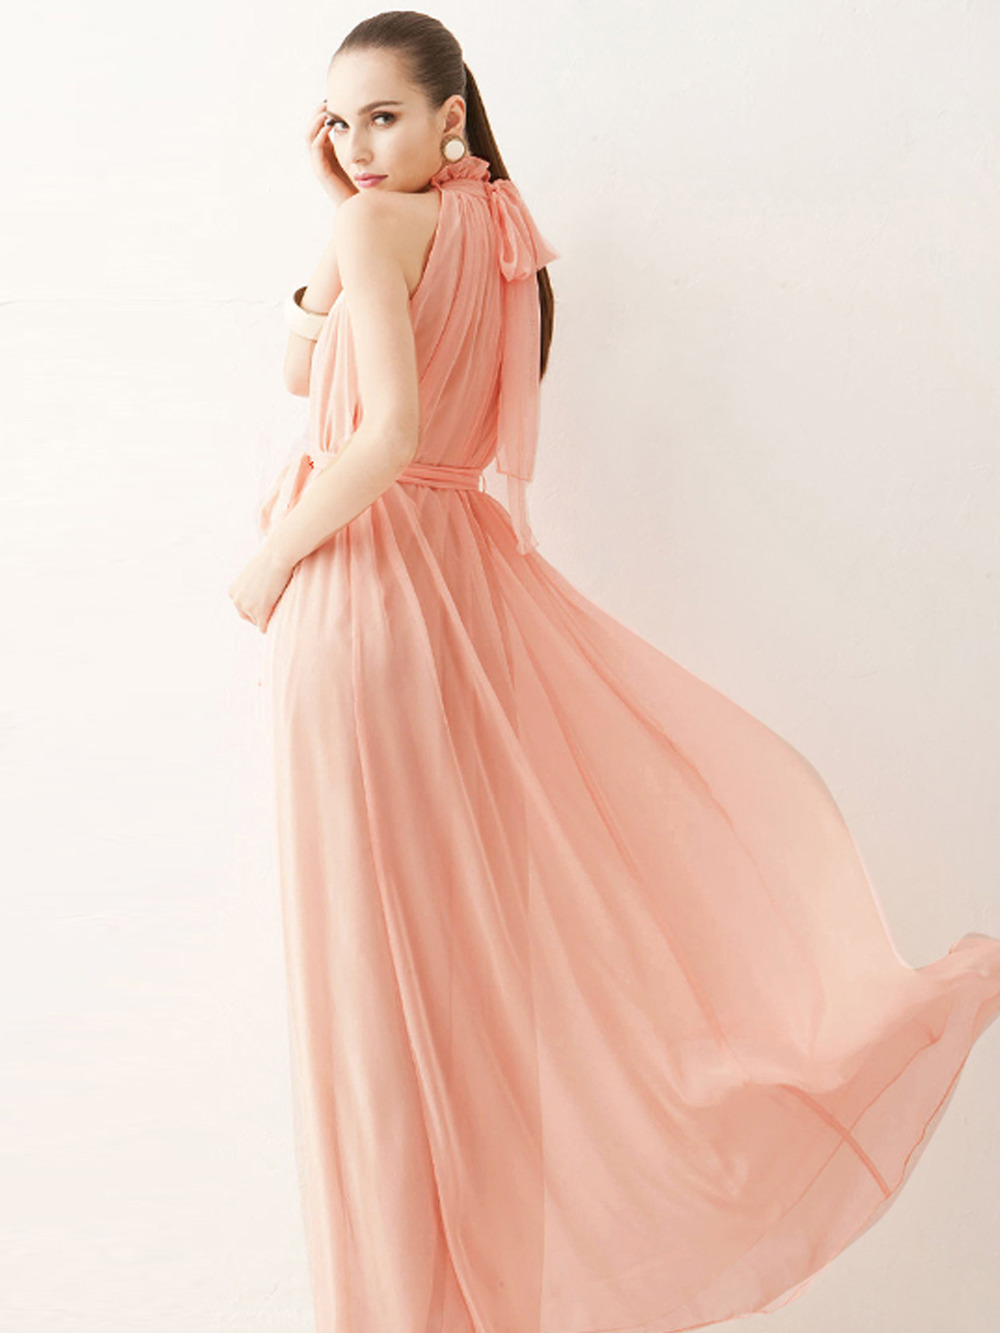 Peach pink long elegant maternity dress gown for summer holiday peach pink long elegant maternity dress gown for summer holiday beach maxi dress in dresses from womens clothing accessories on aliexpress alibaba ombrellifo Gallery